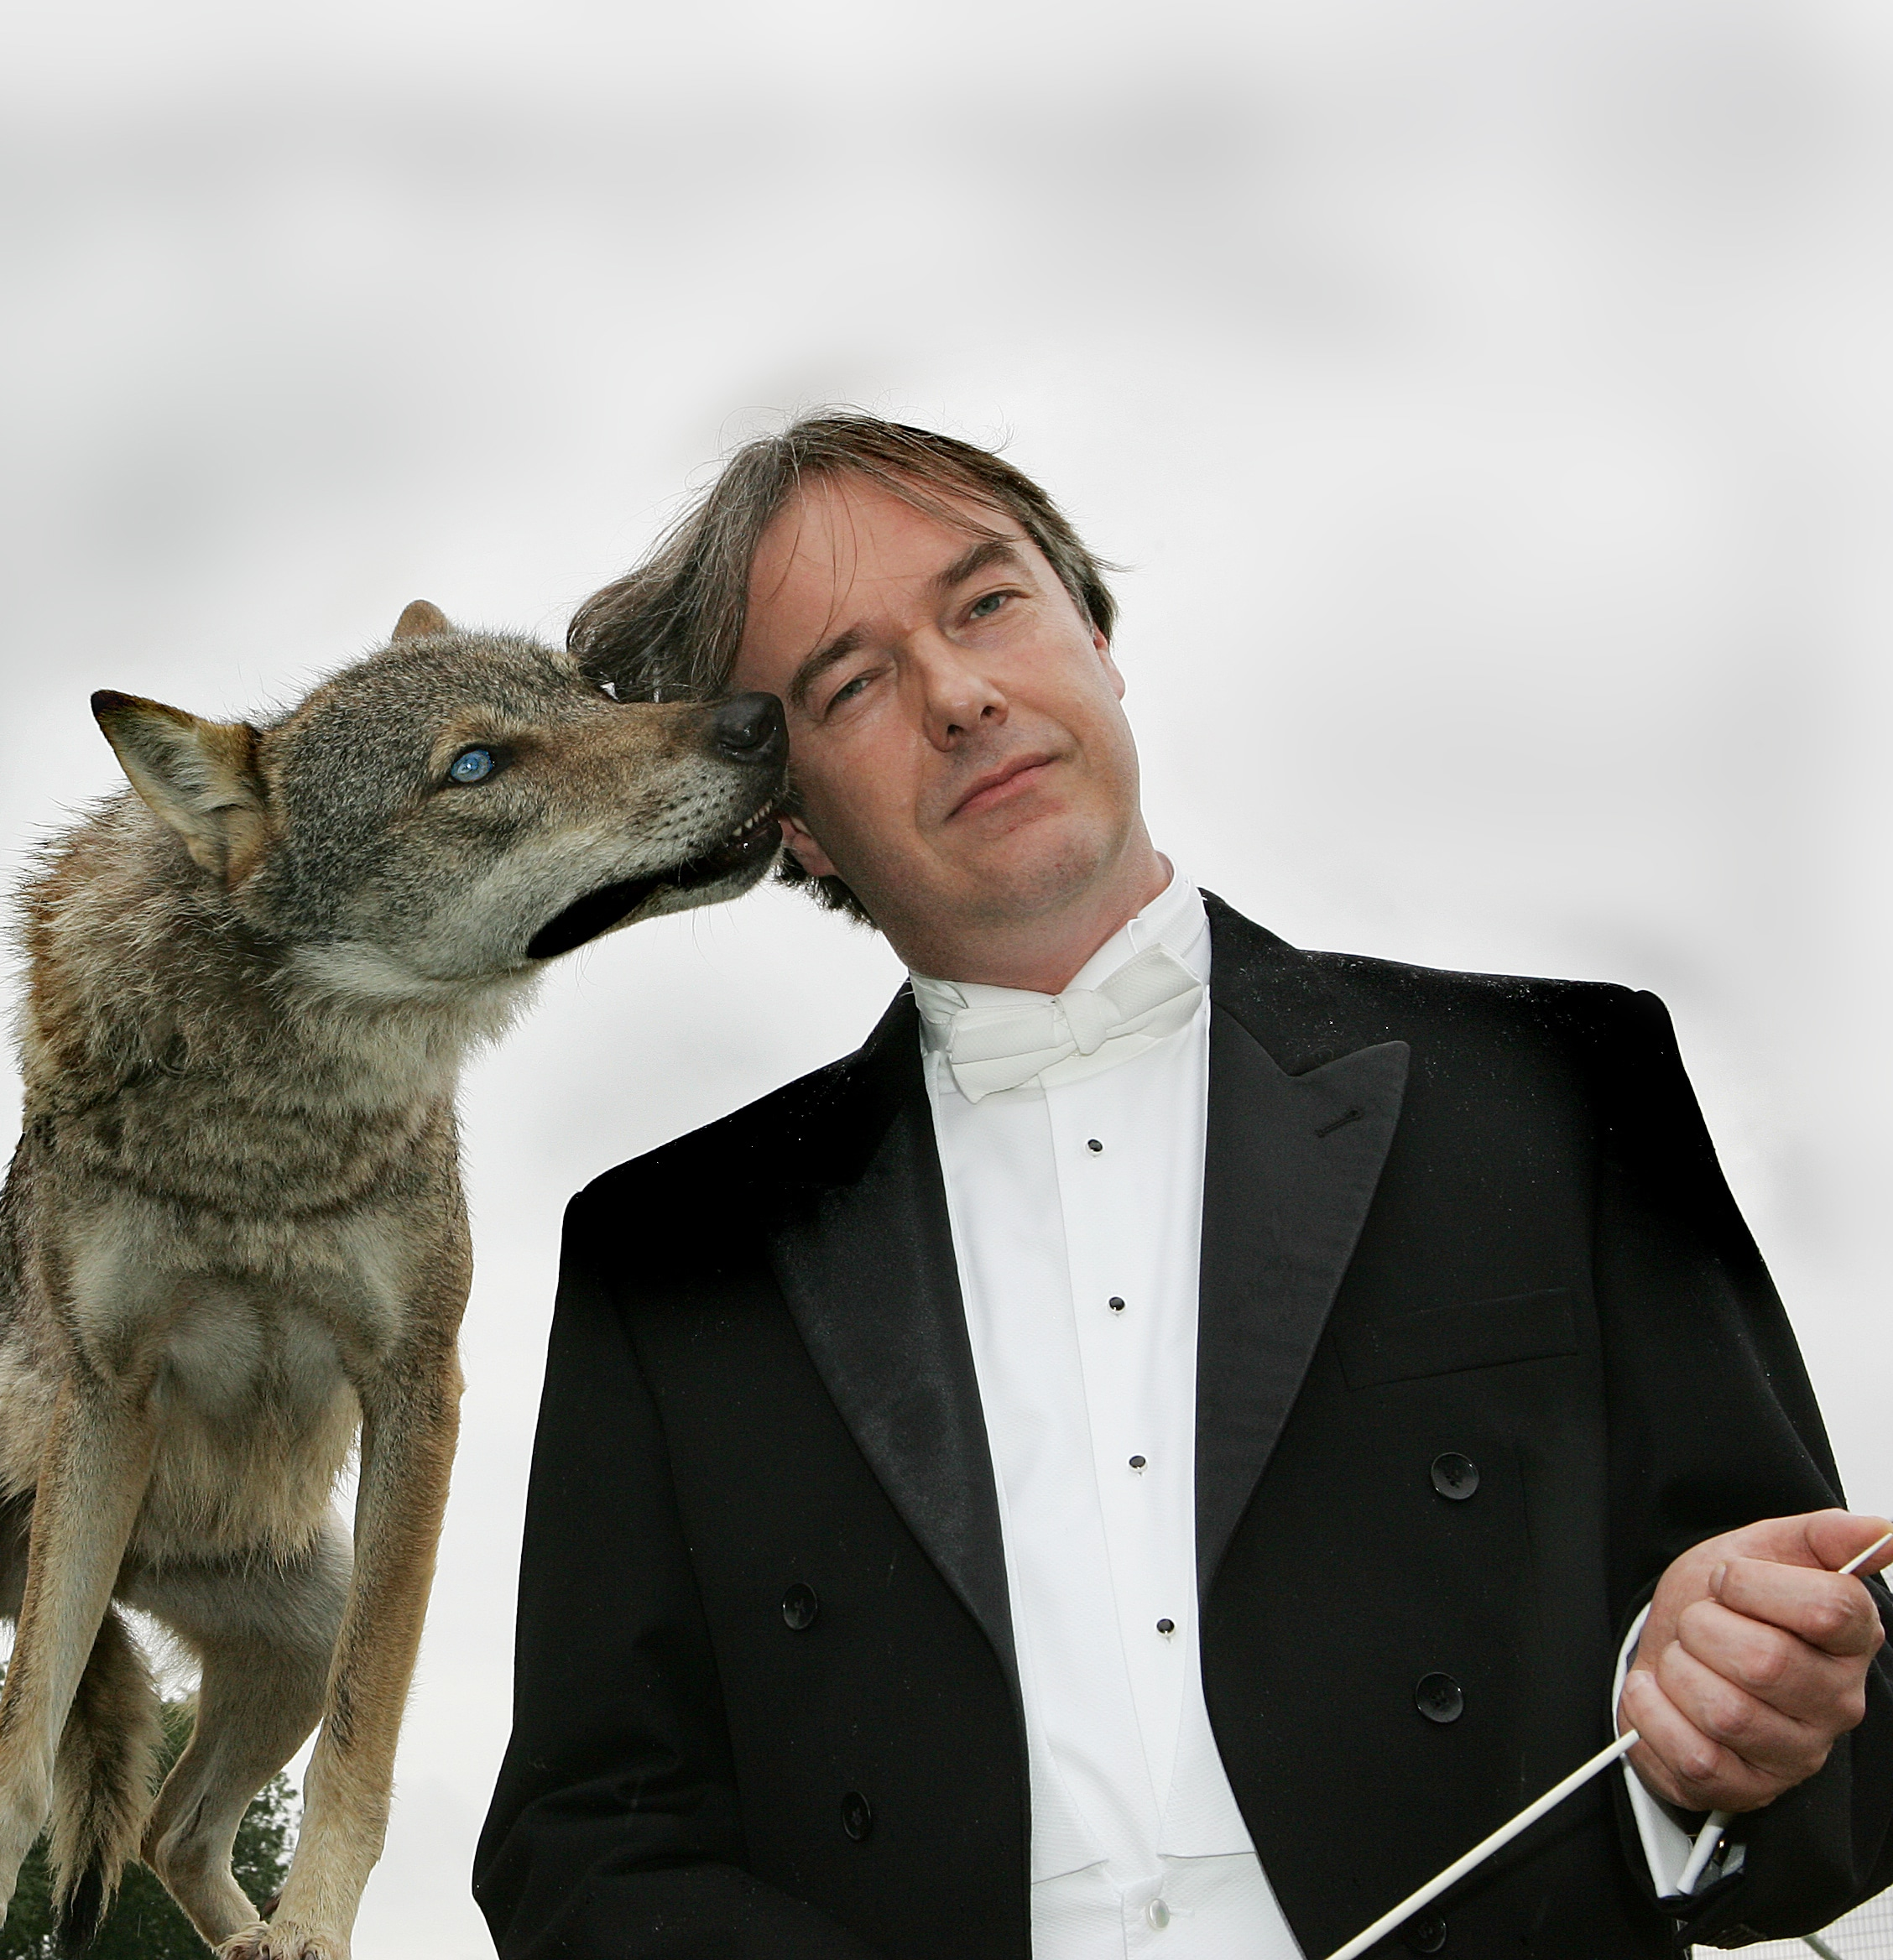 Just in: British conductor to lead in Iran